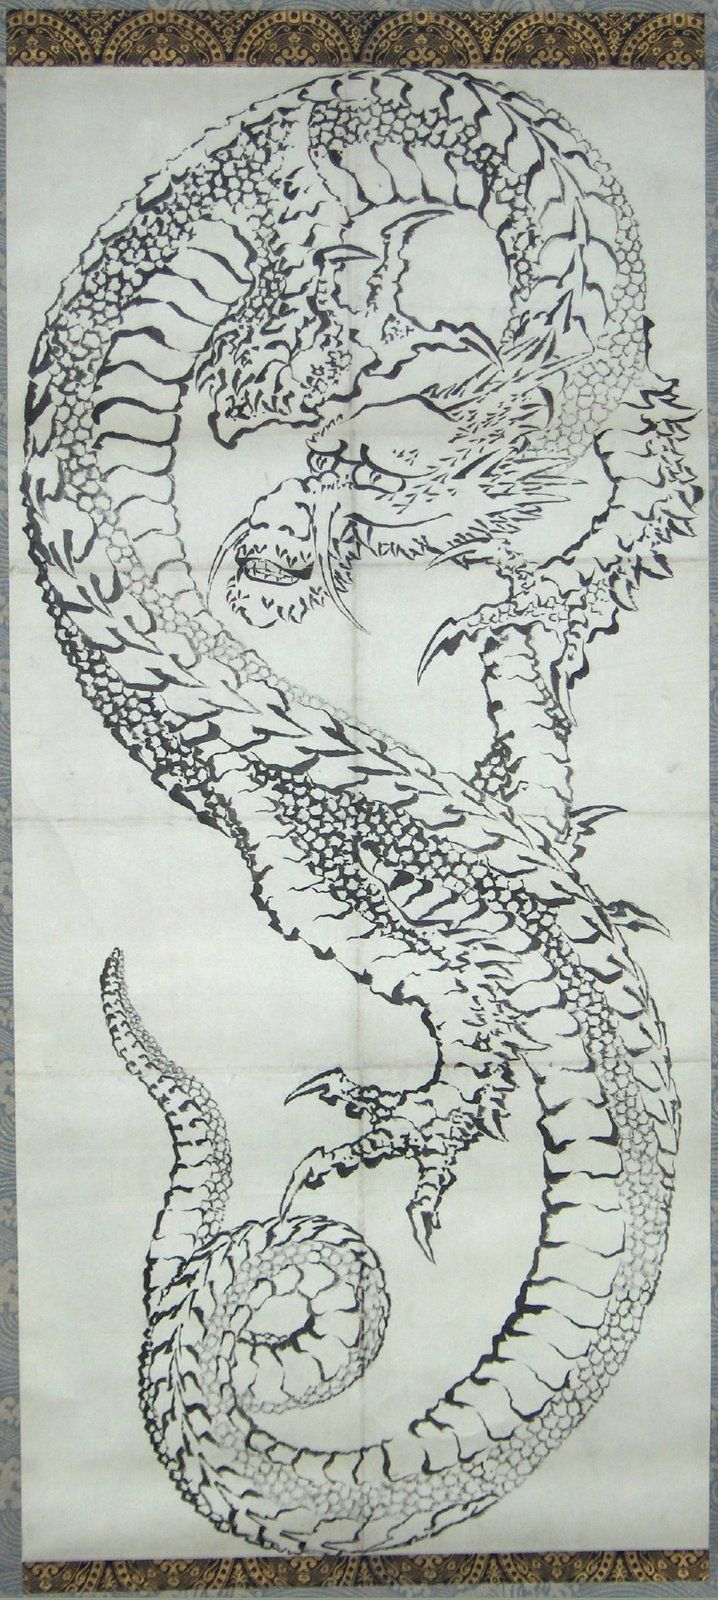 Hokusai Dragon.  It comes from the mist, and not from fire.